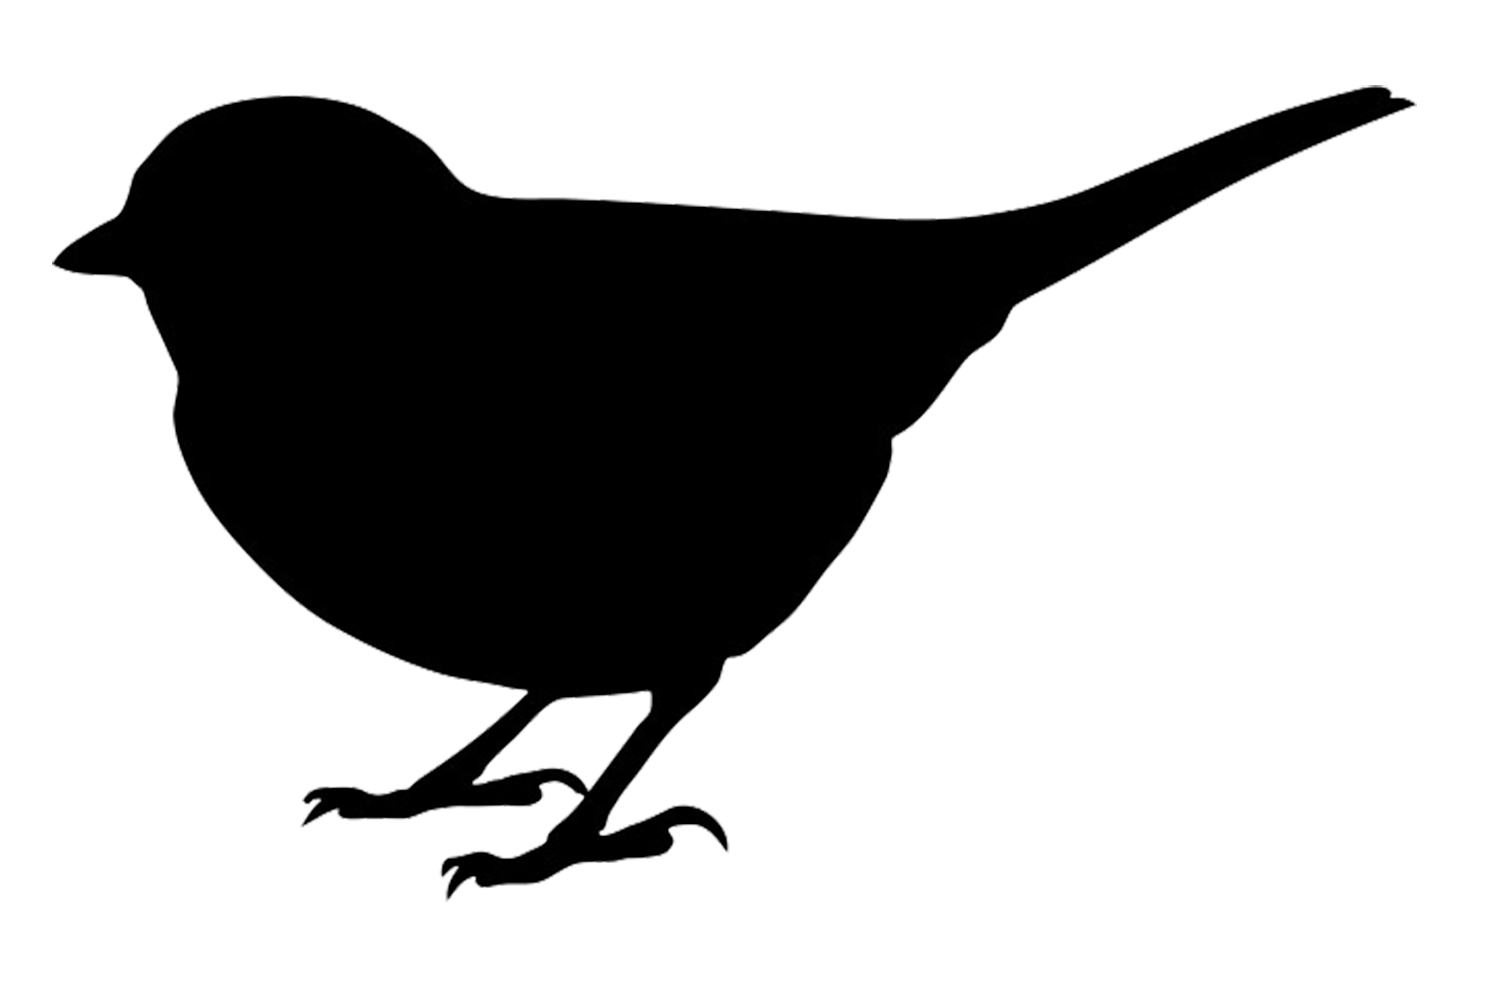 1494x981 Finch clipart bird silhouette